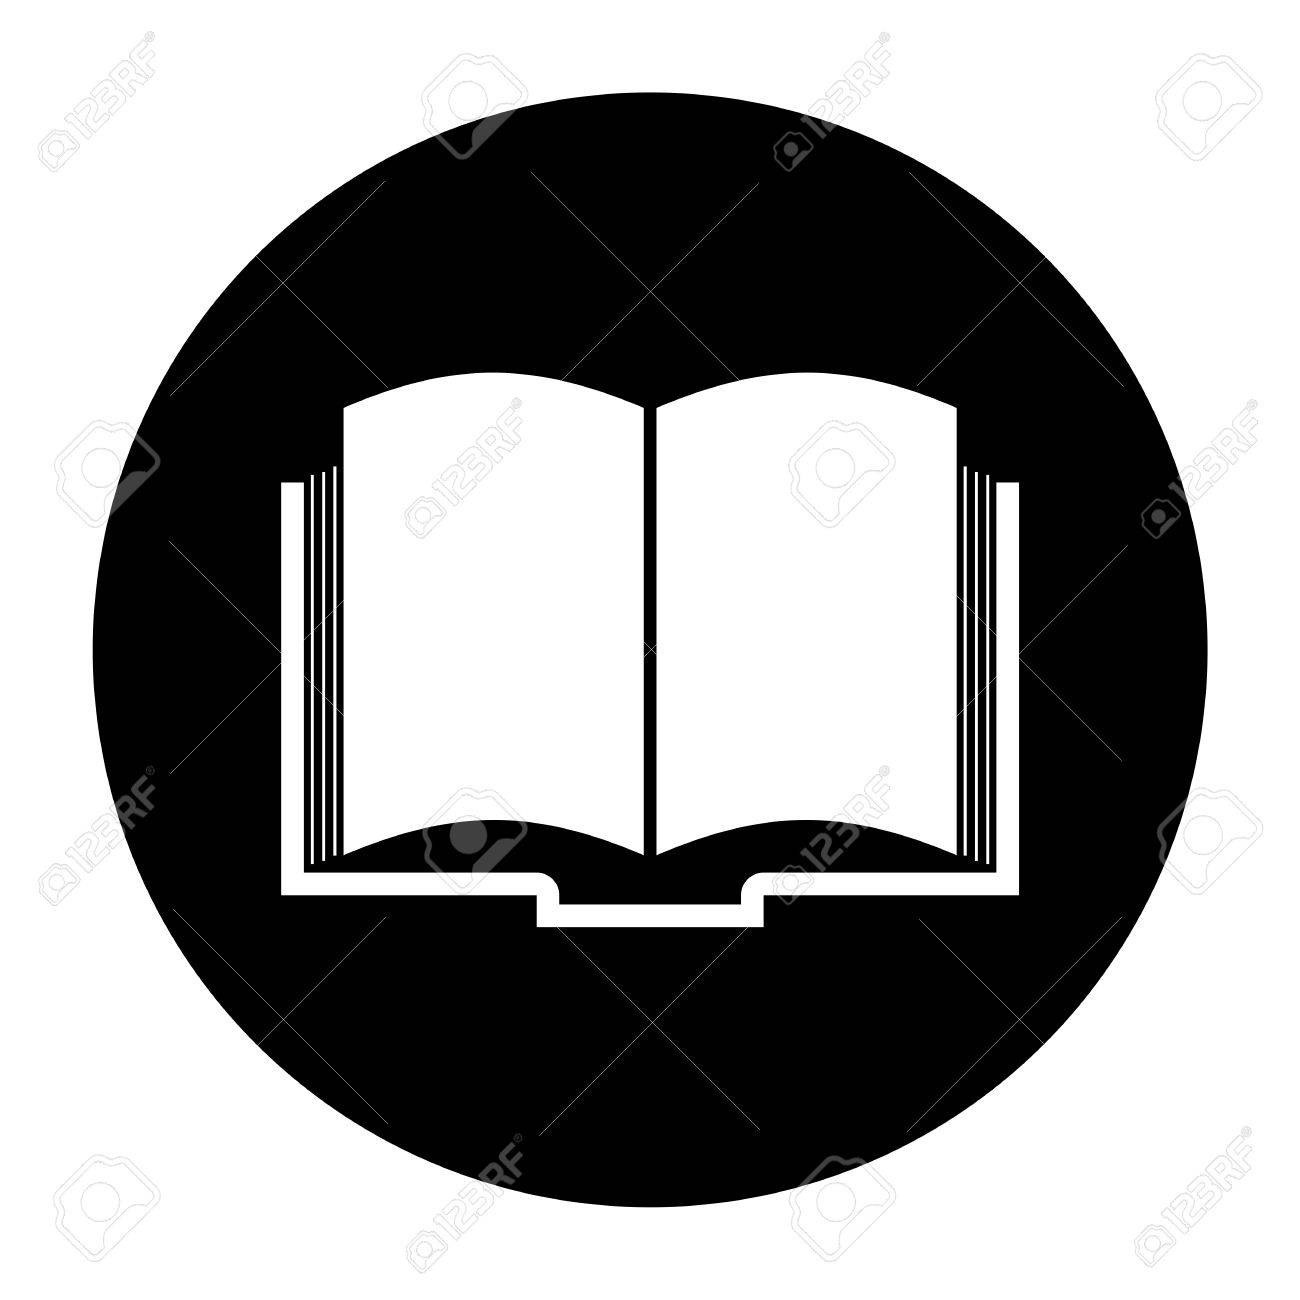 book icon black circle royalty free cliparts vectors and stock rh 123rf com open book vector icon facebook icon vector